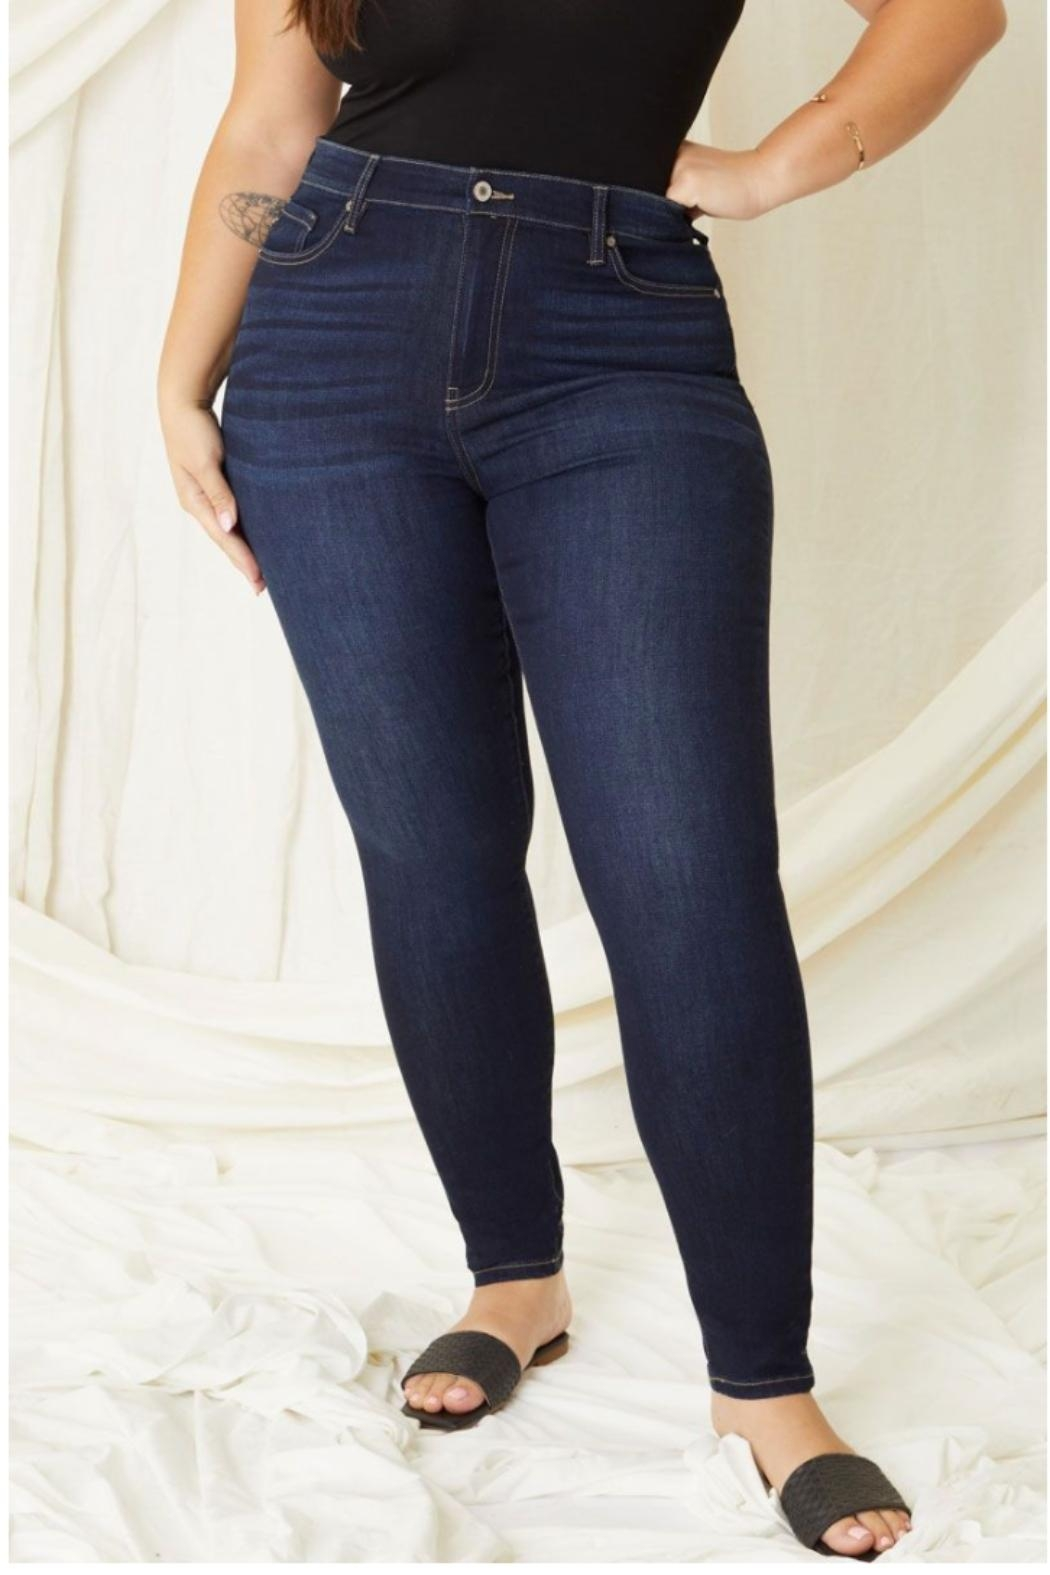 KanCan Lauryn High-Rise Skinny Kancan Jeans - Side Cropped Image